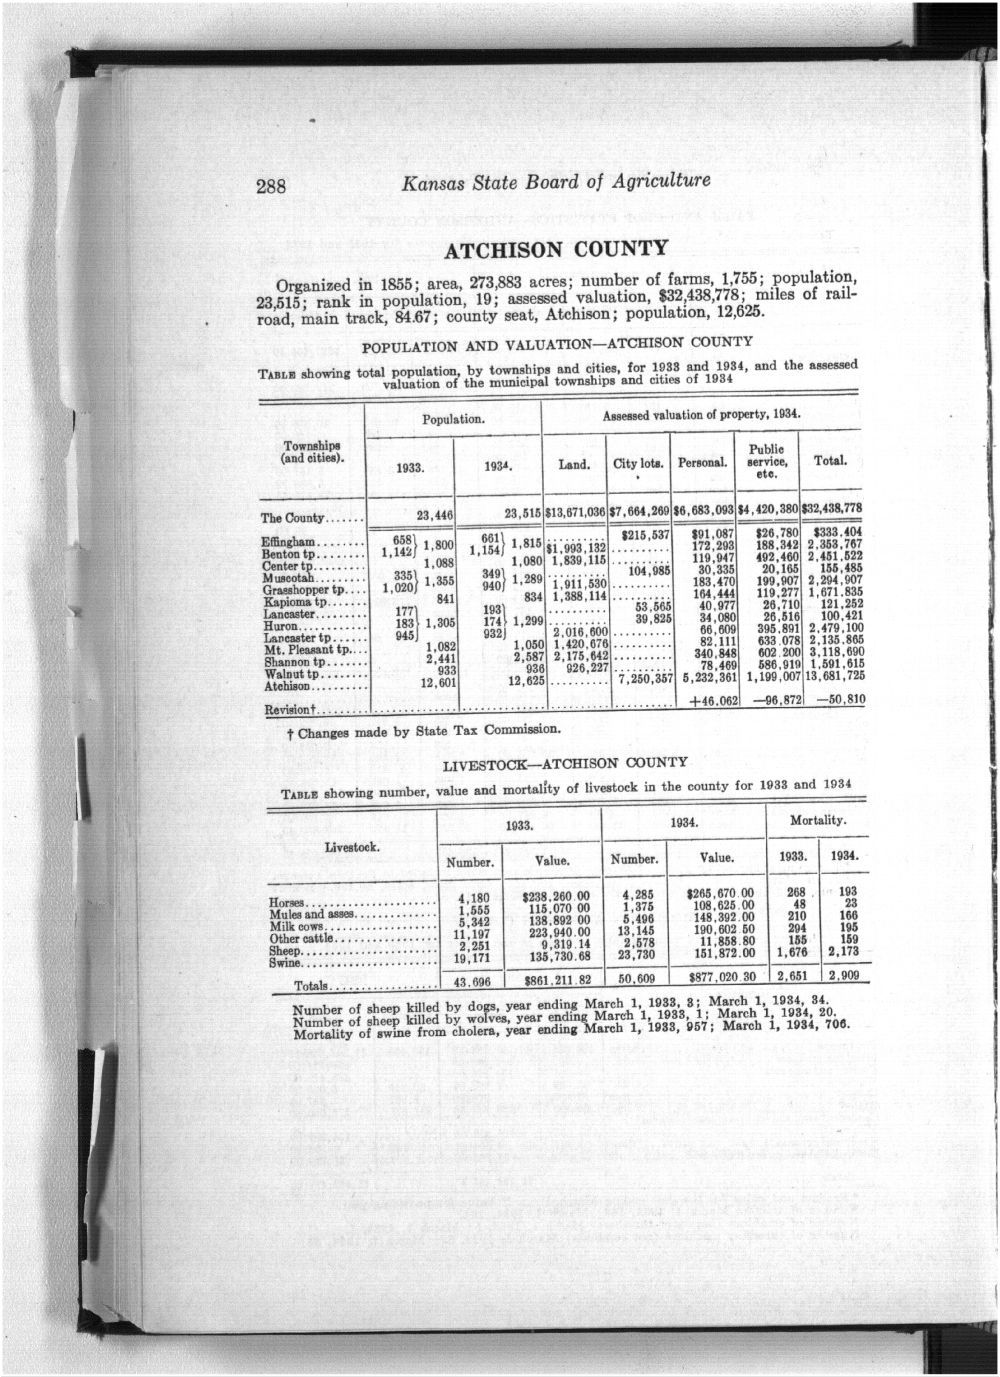 Twenty-ninth Biennial Report, Statistics by county showing population, acreage, production, and livestock, 1933-1934 - 288